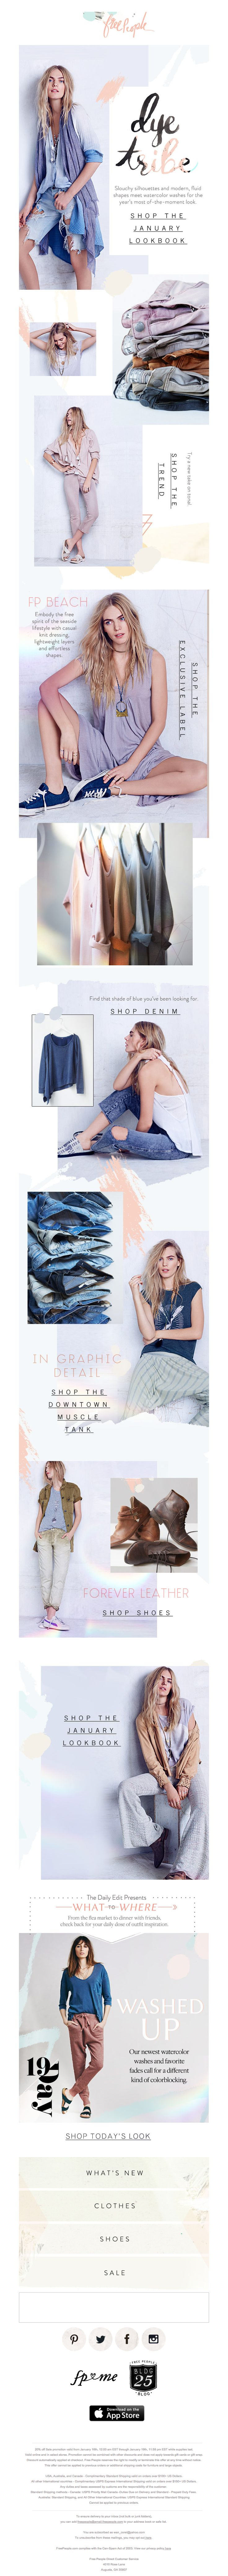 Free People // cool mix of lifestyle + product // use to show color range + fit/styling